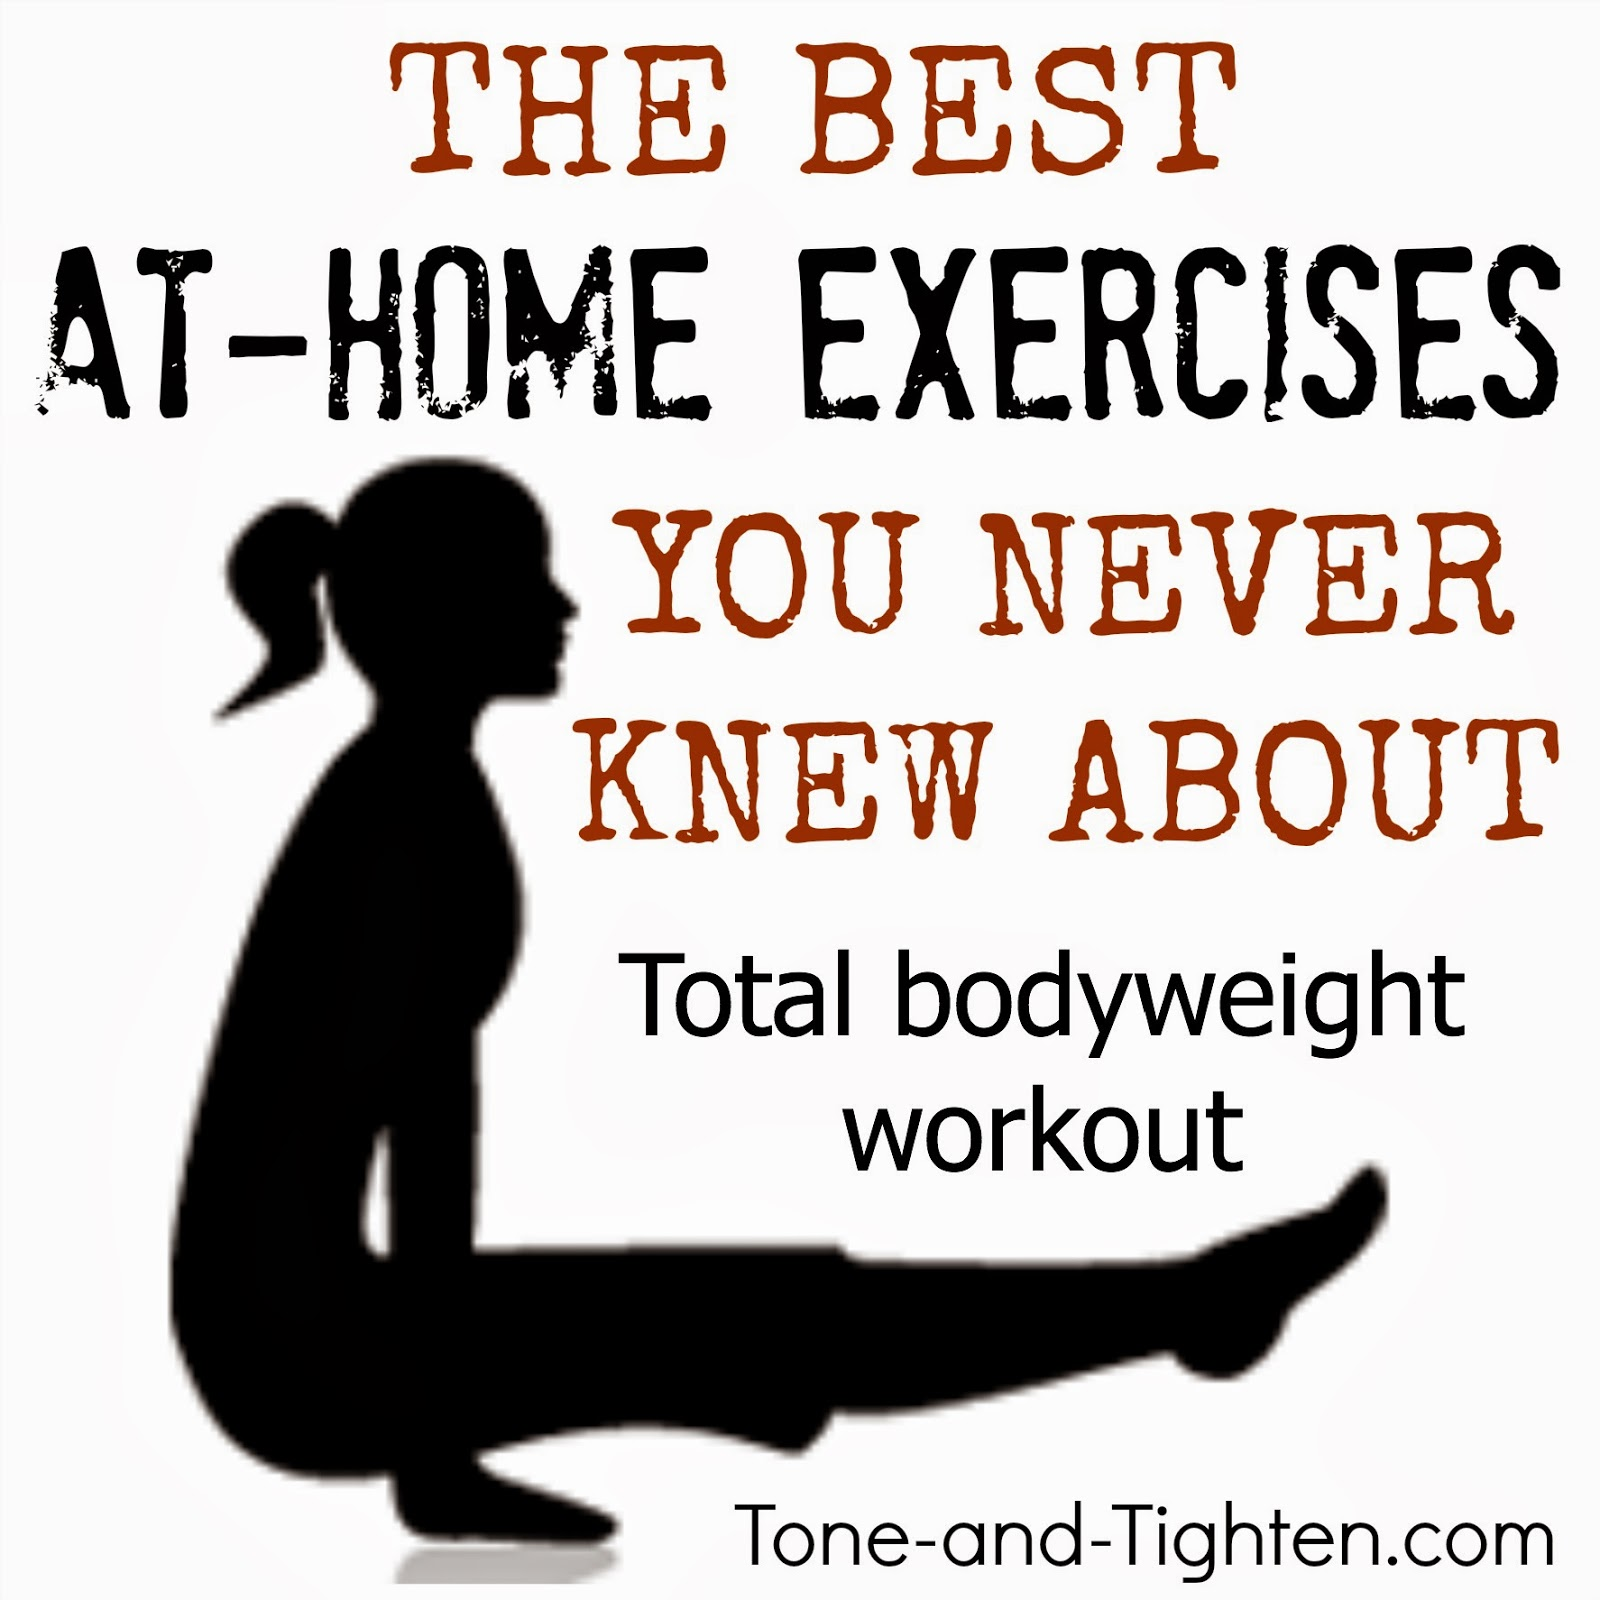 http://tone-and-tighten.com/2014/01/the-best-at-home-exercises-you-never.html#more